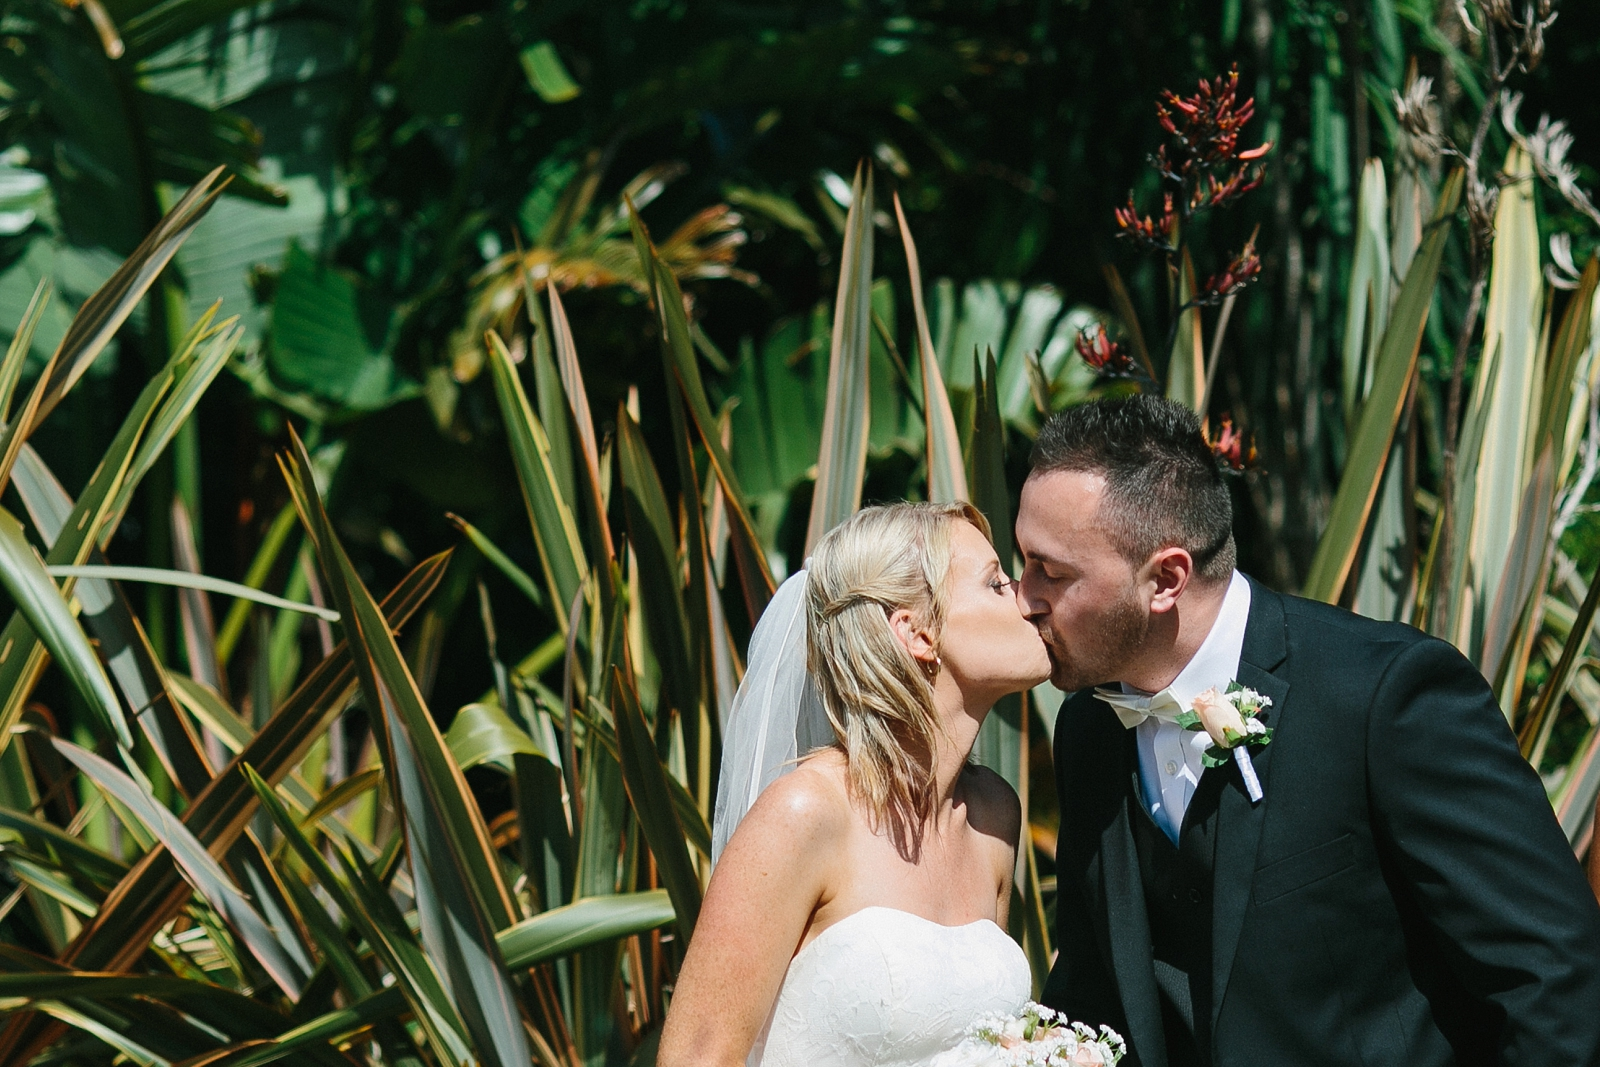 ConnorLaura_Auckland Wedding Photographer_Patty Lagera_0060.jpg